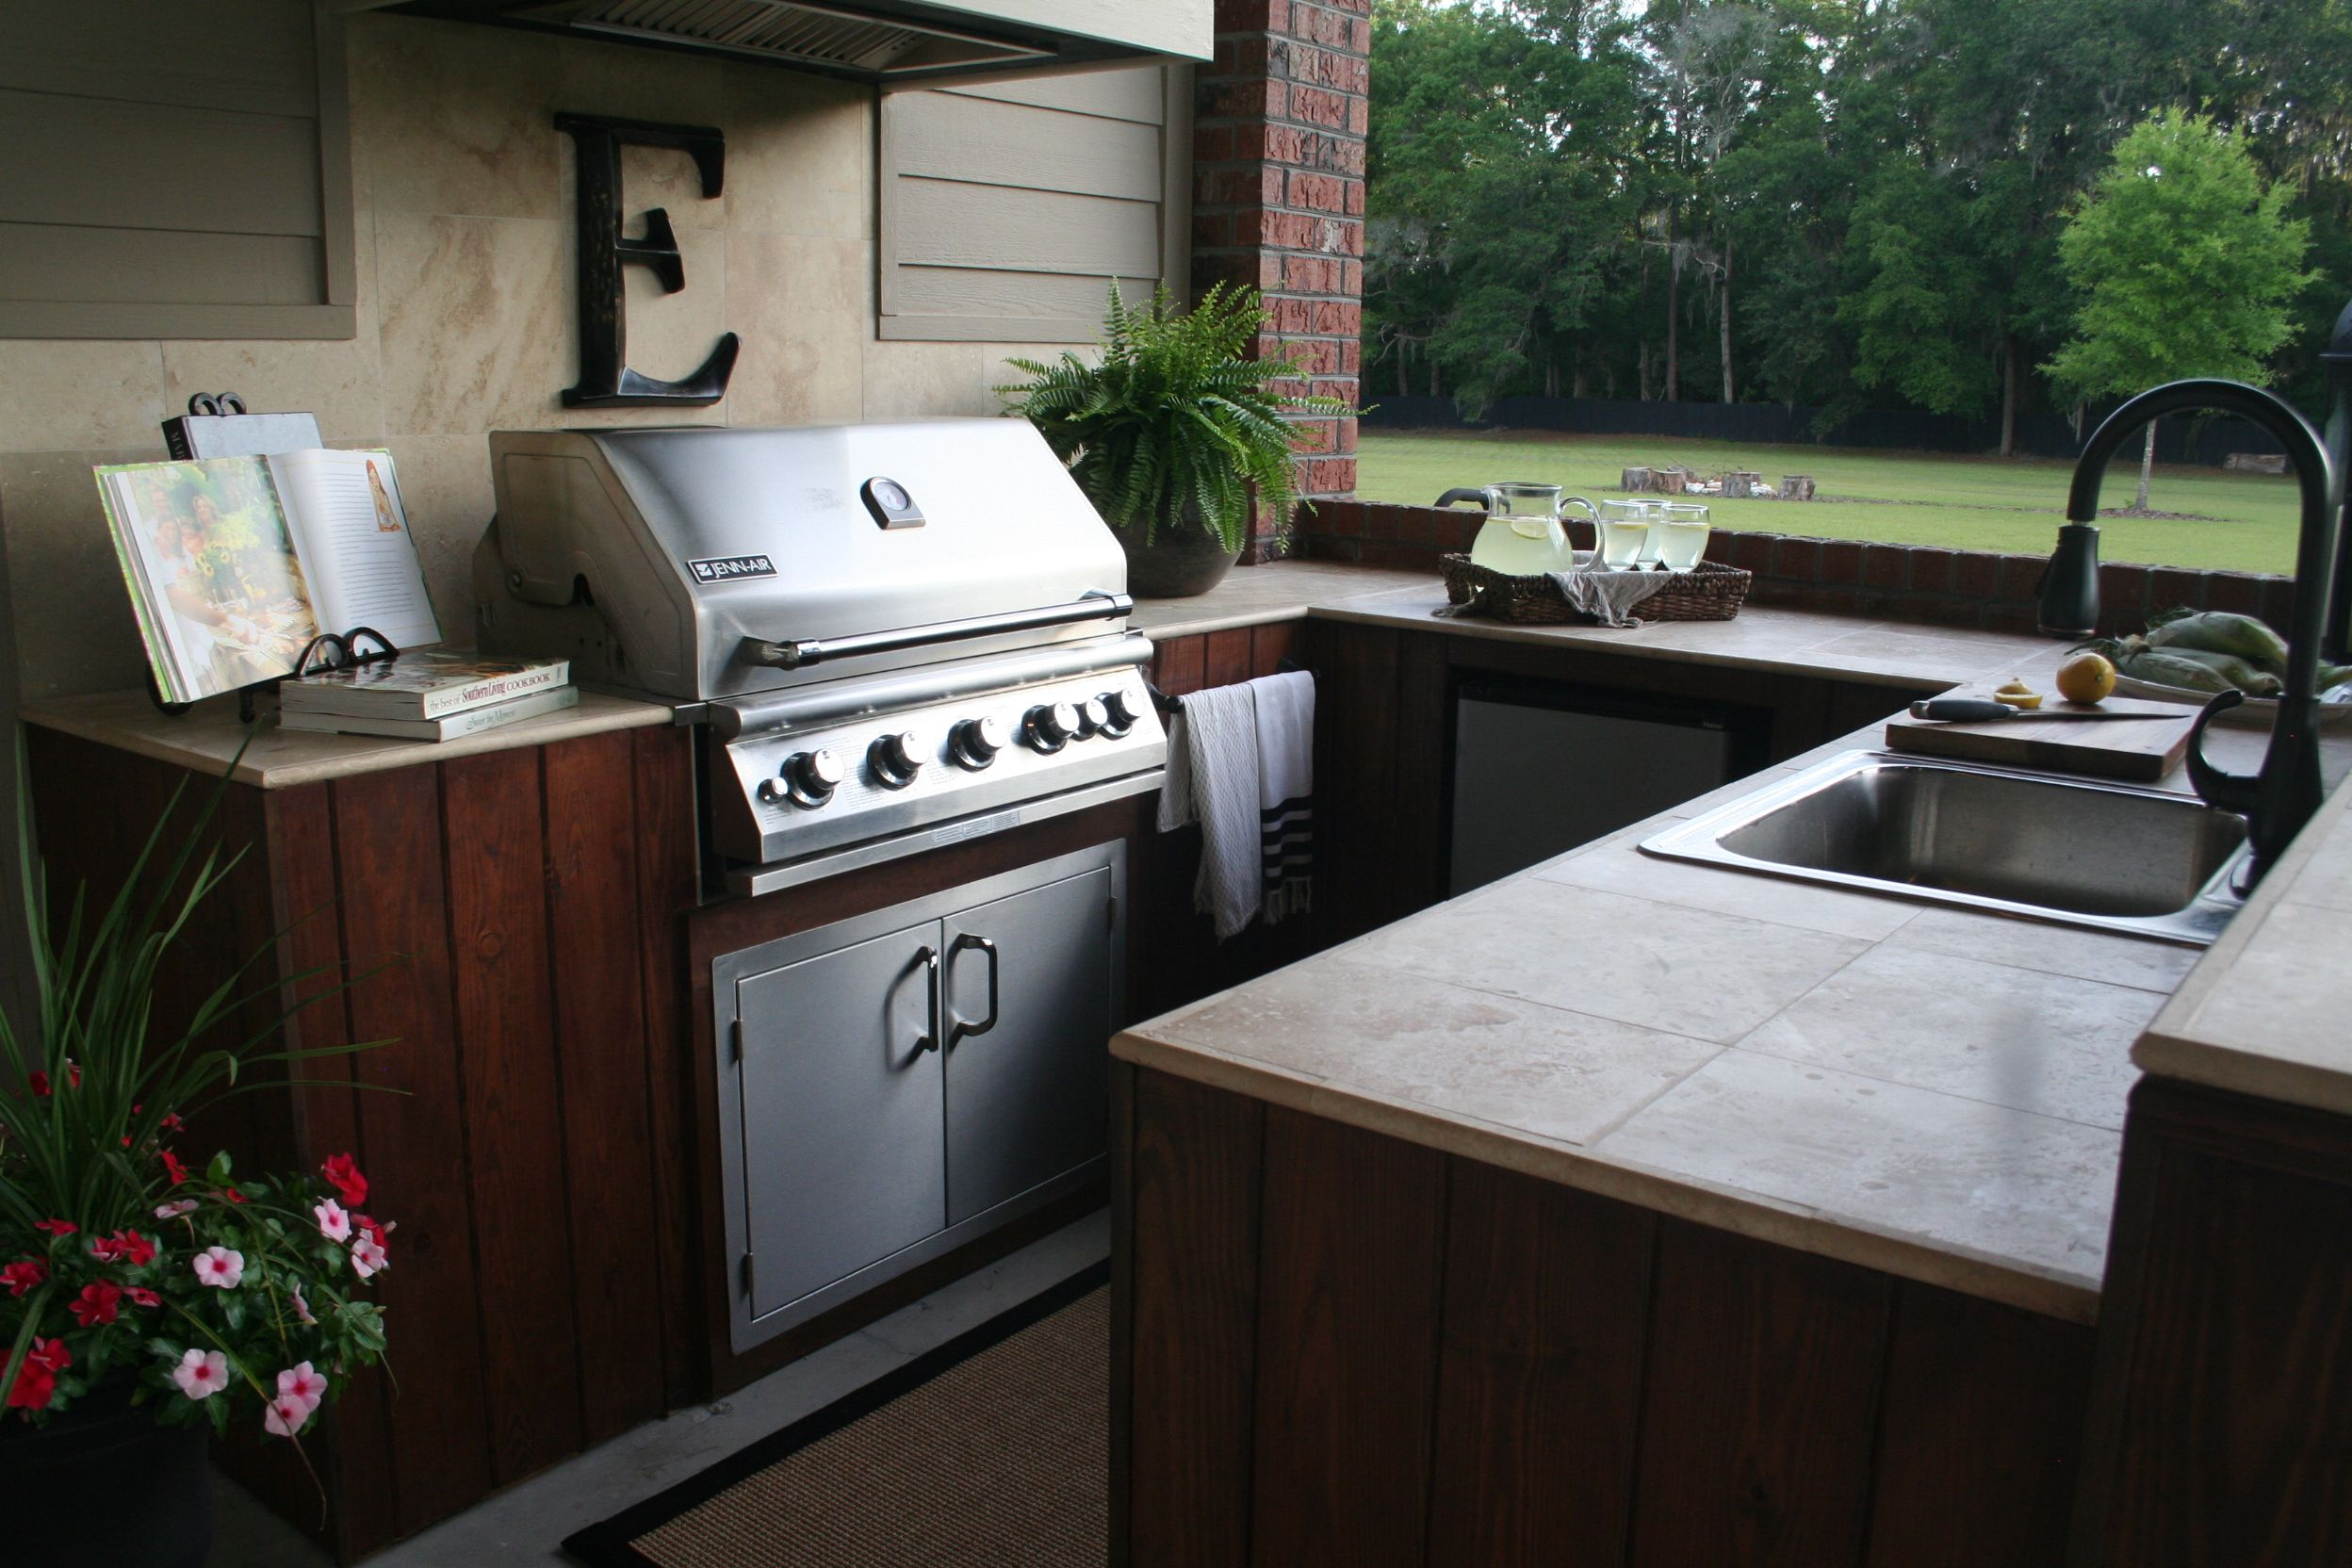 summer kitchen with jenn-air grill, travertine tops and outdoor hood